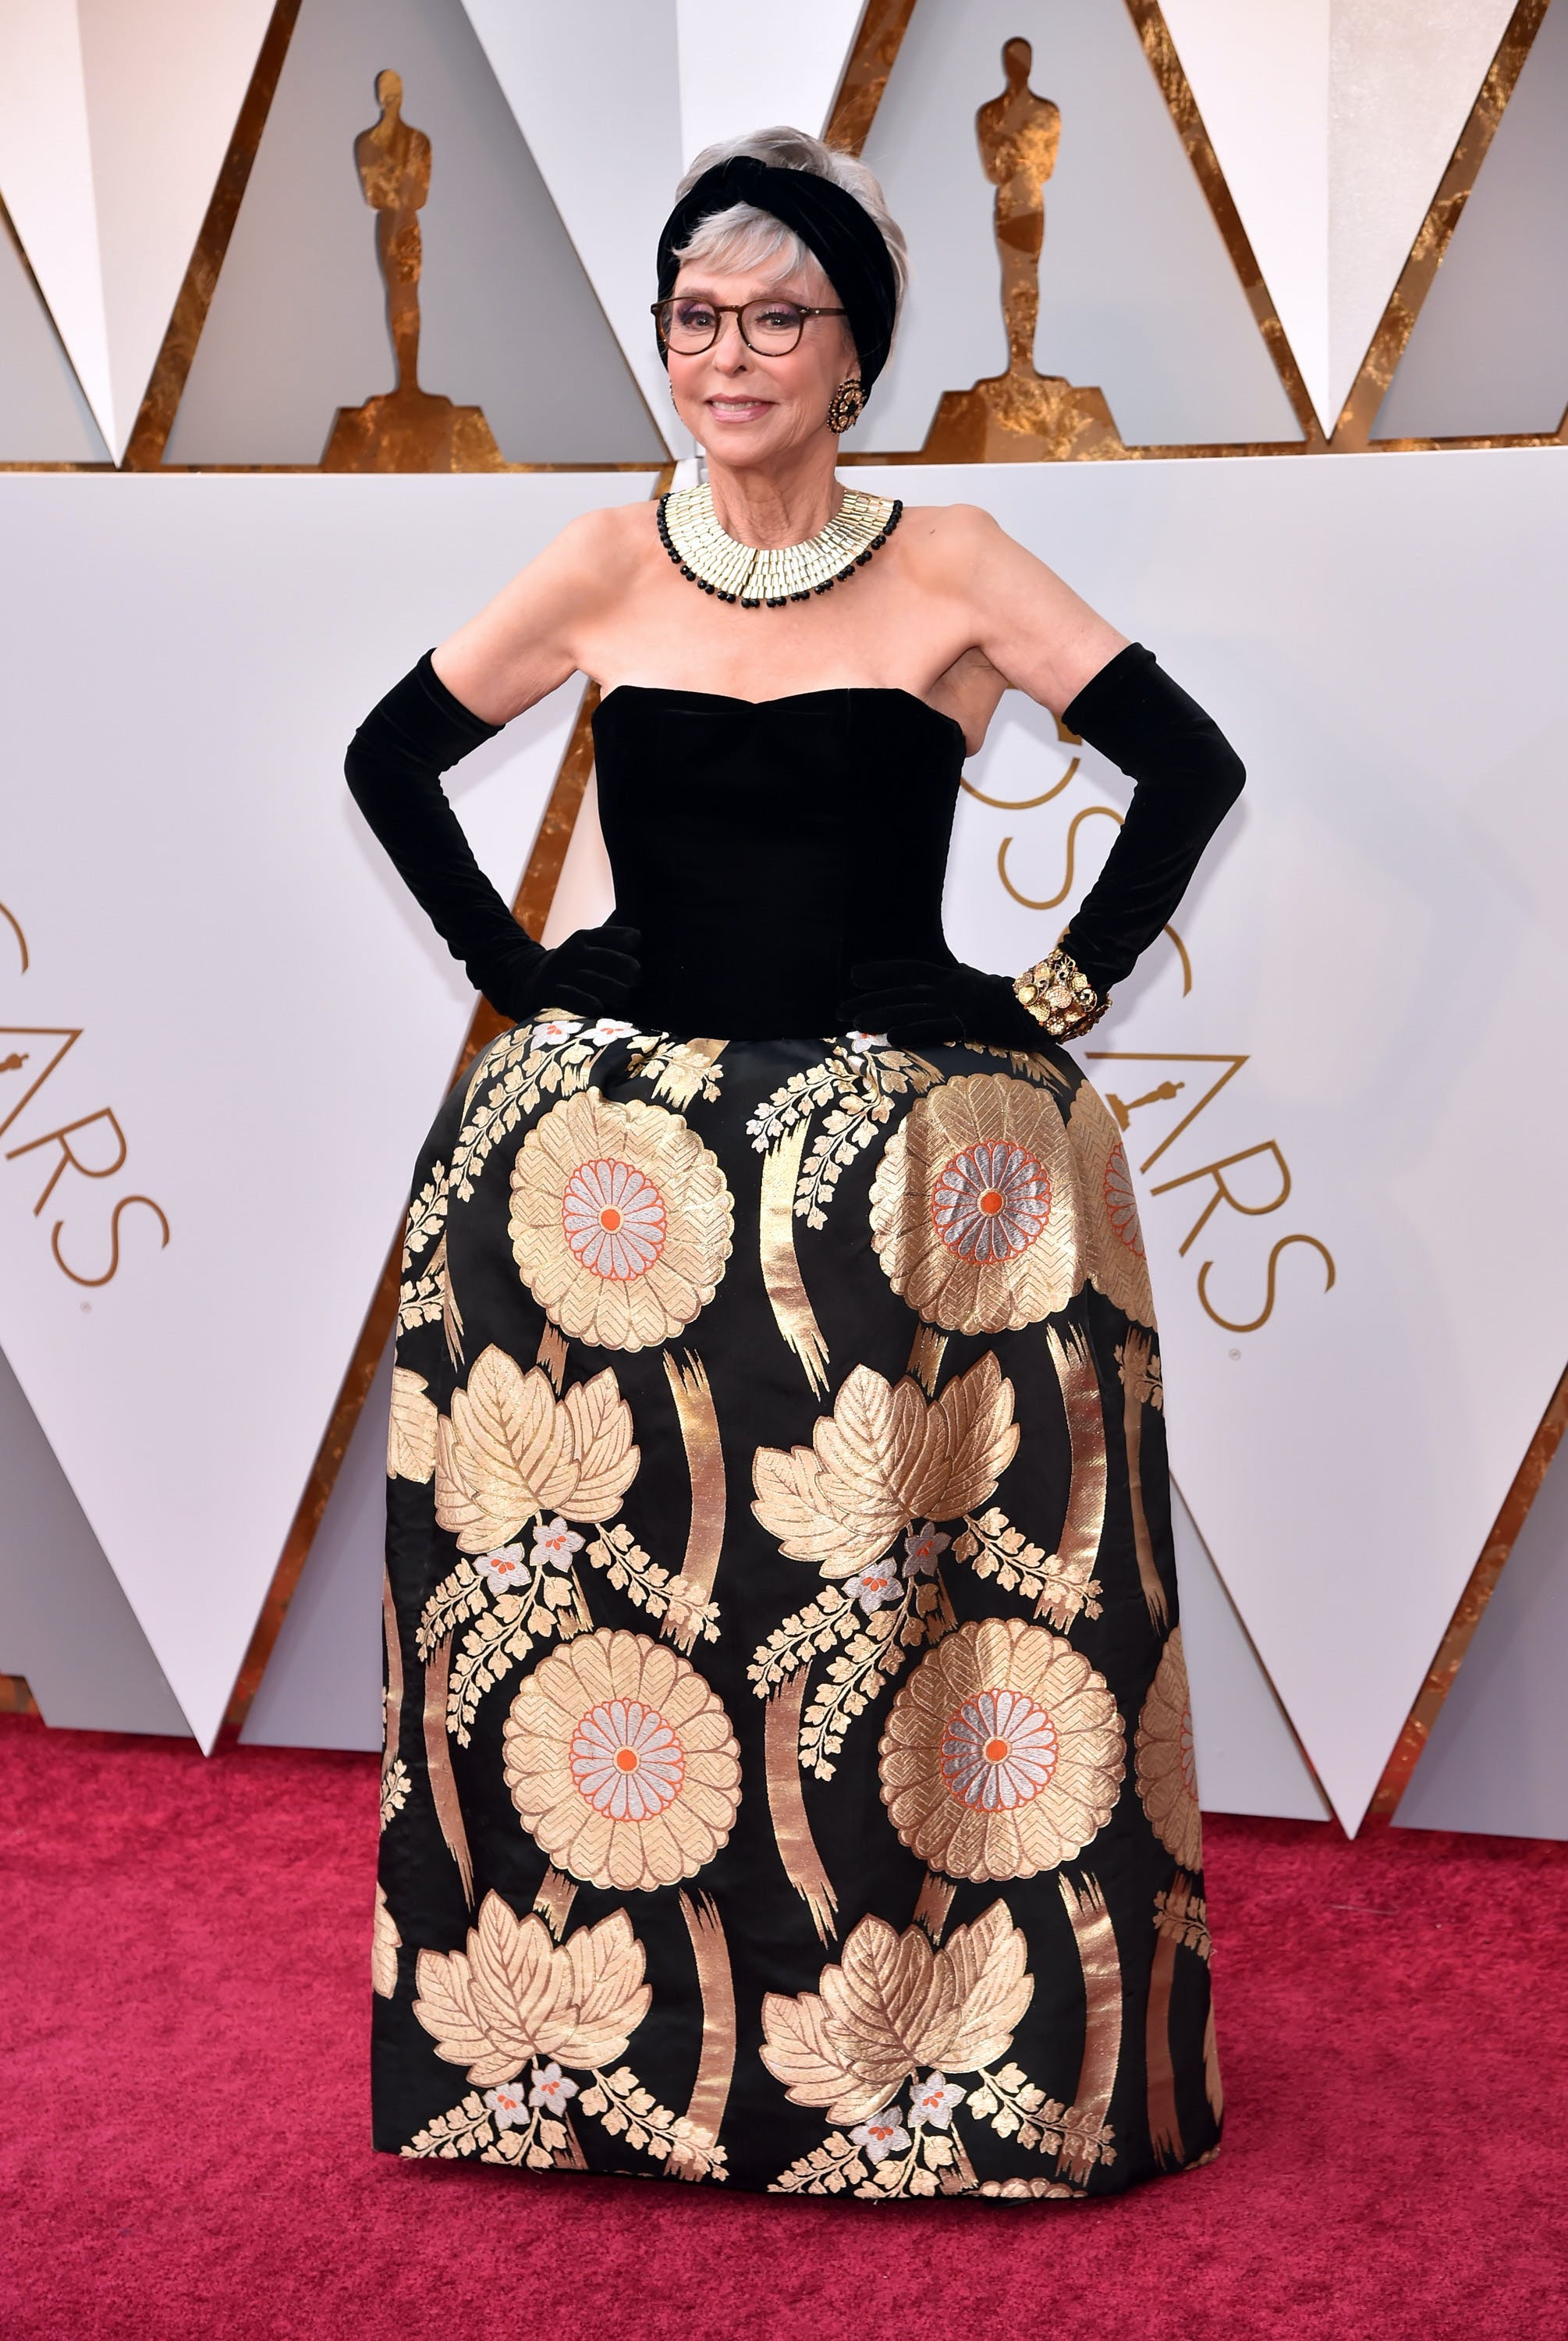 Rita Moreno at the 2018 Oscars